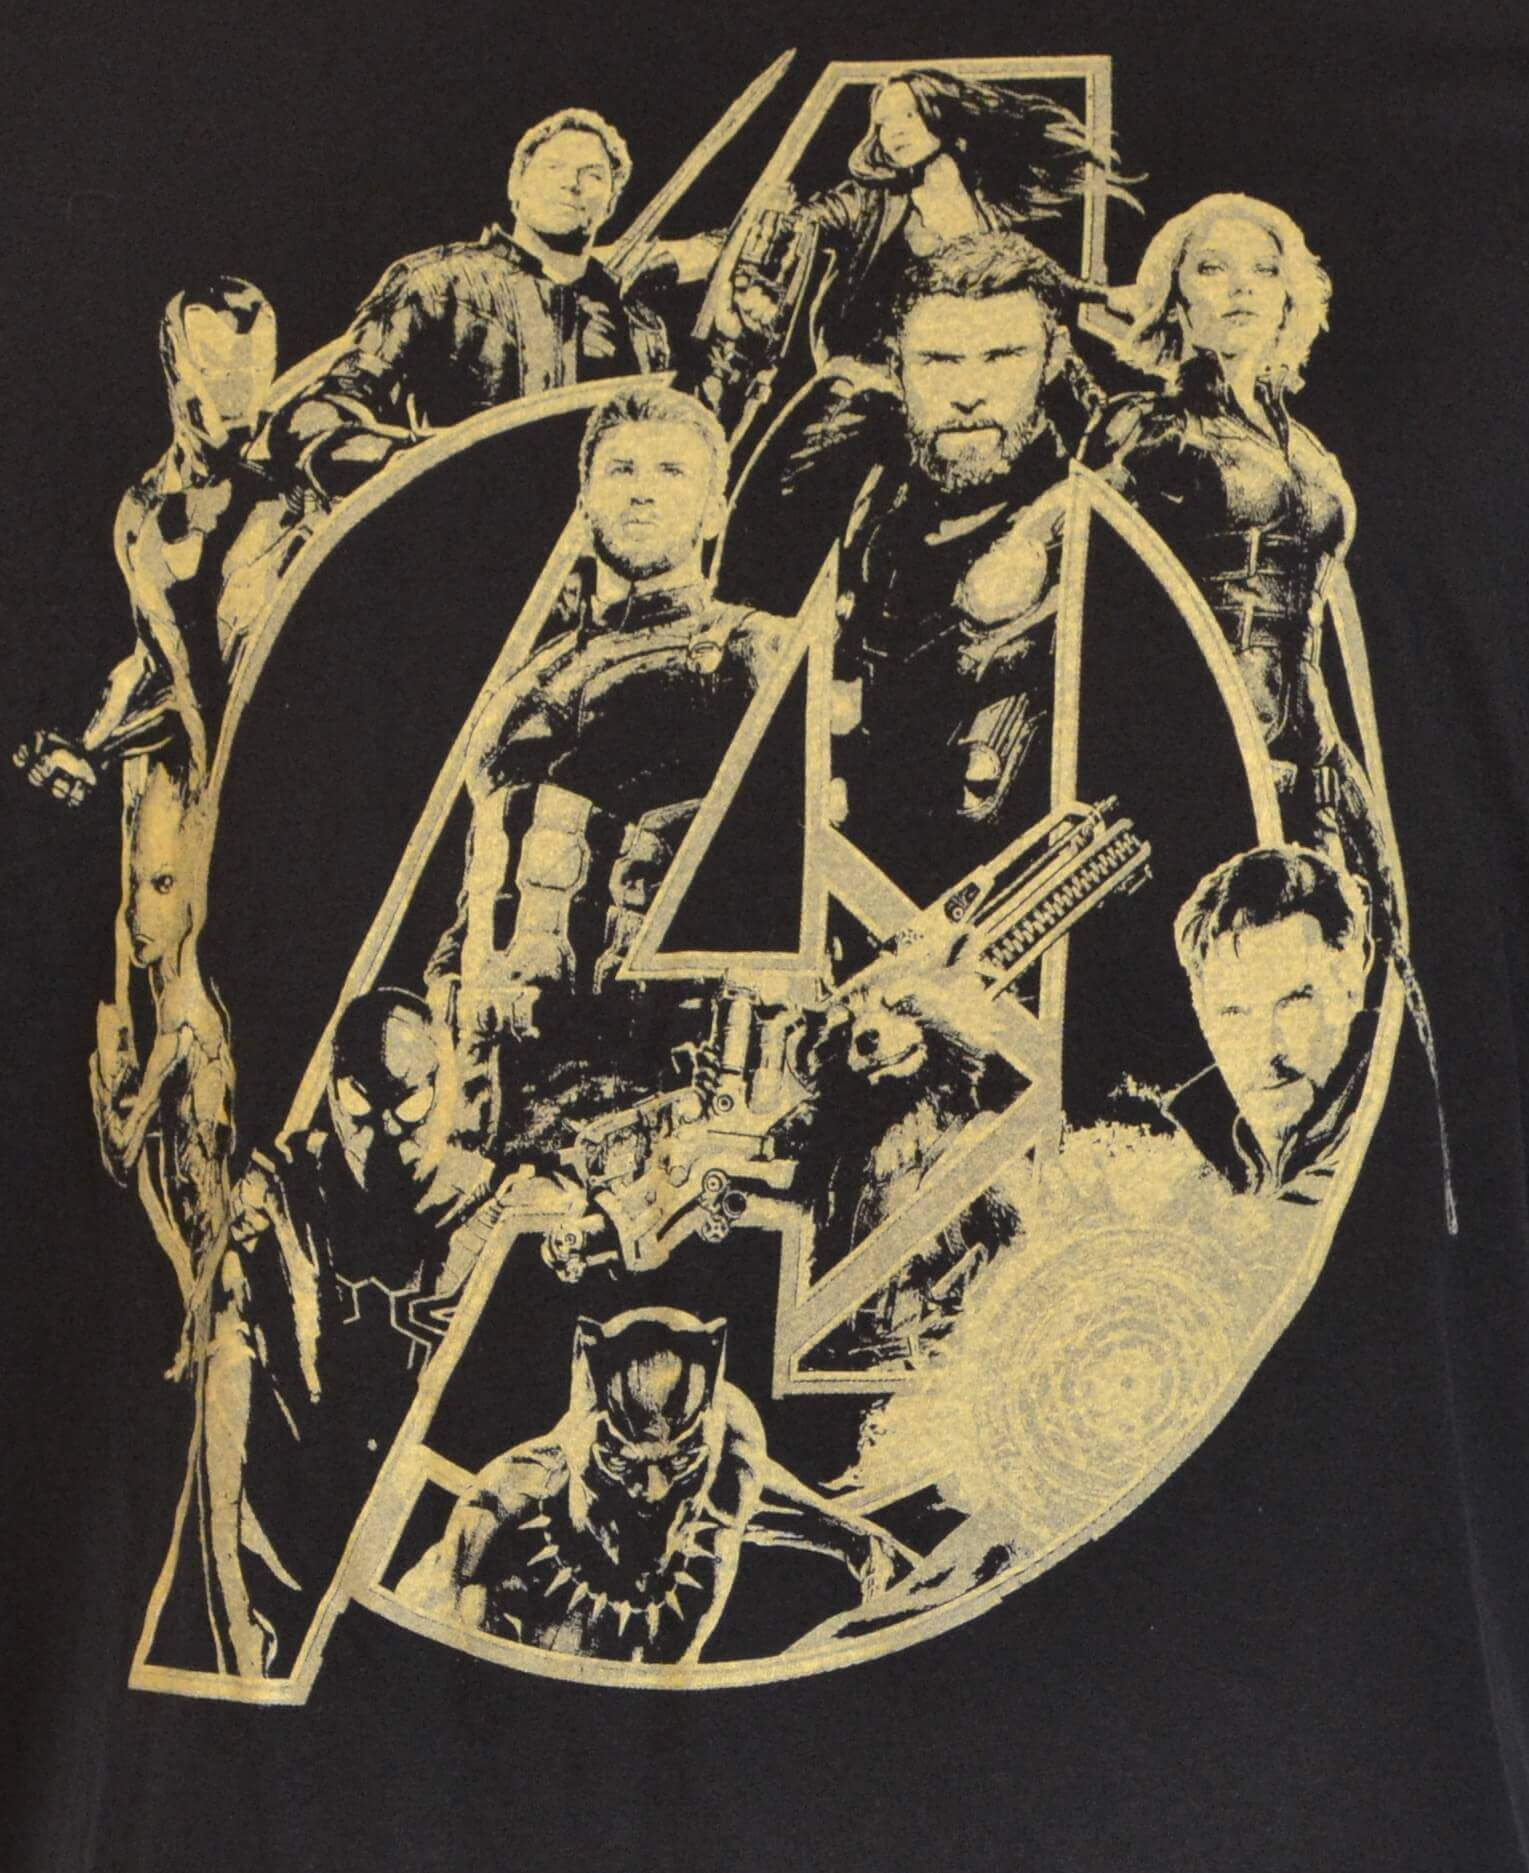 OFFICIAL MARVEL AVENGERS T-SHIRT - MULTI CHARACTER